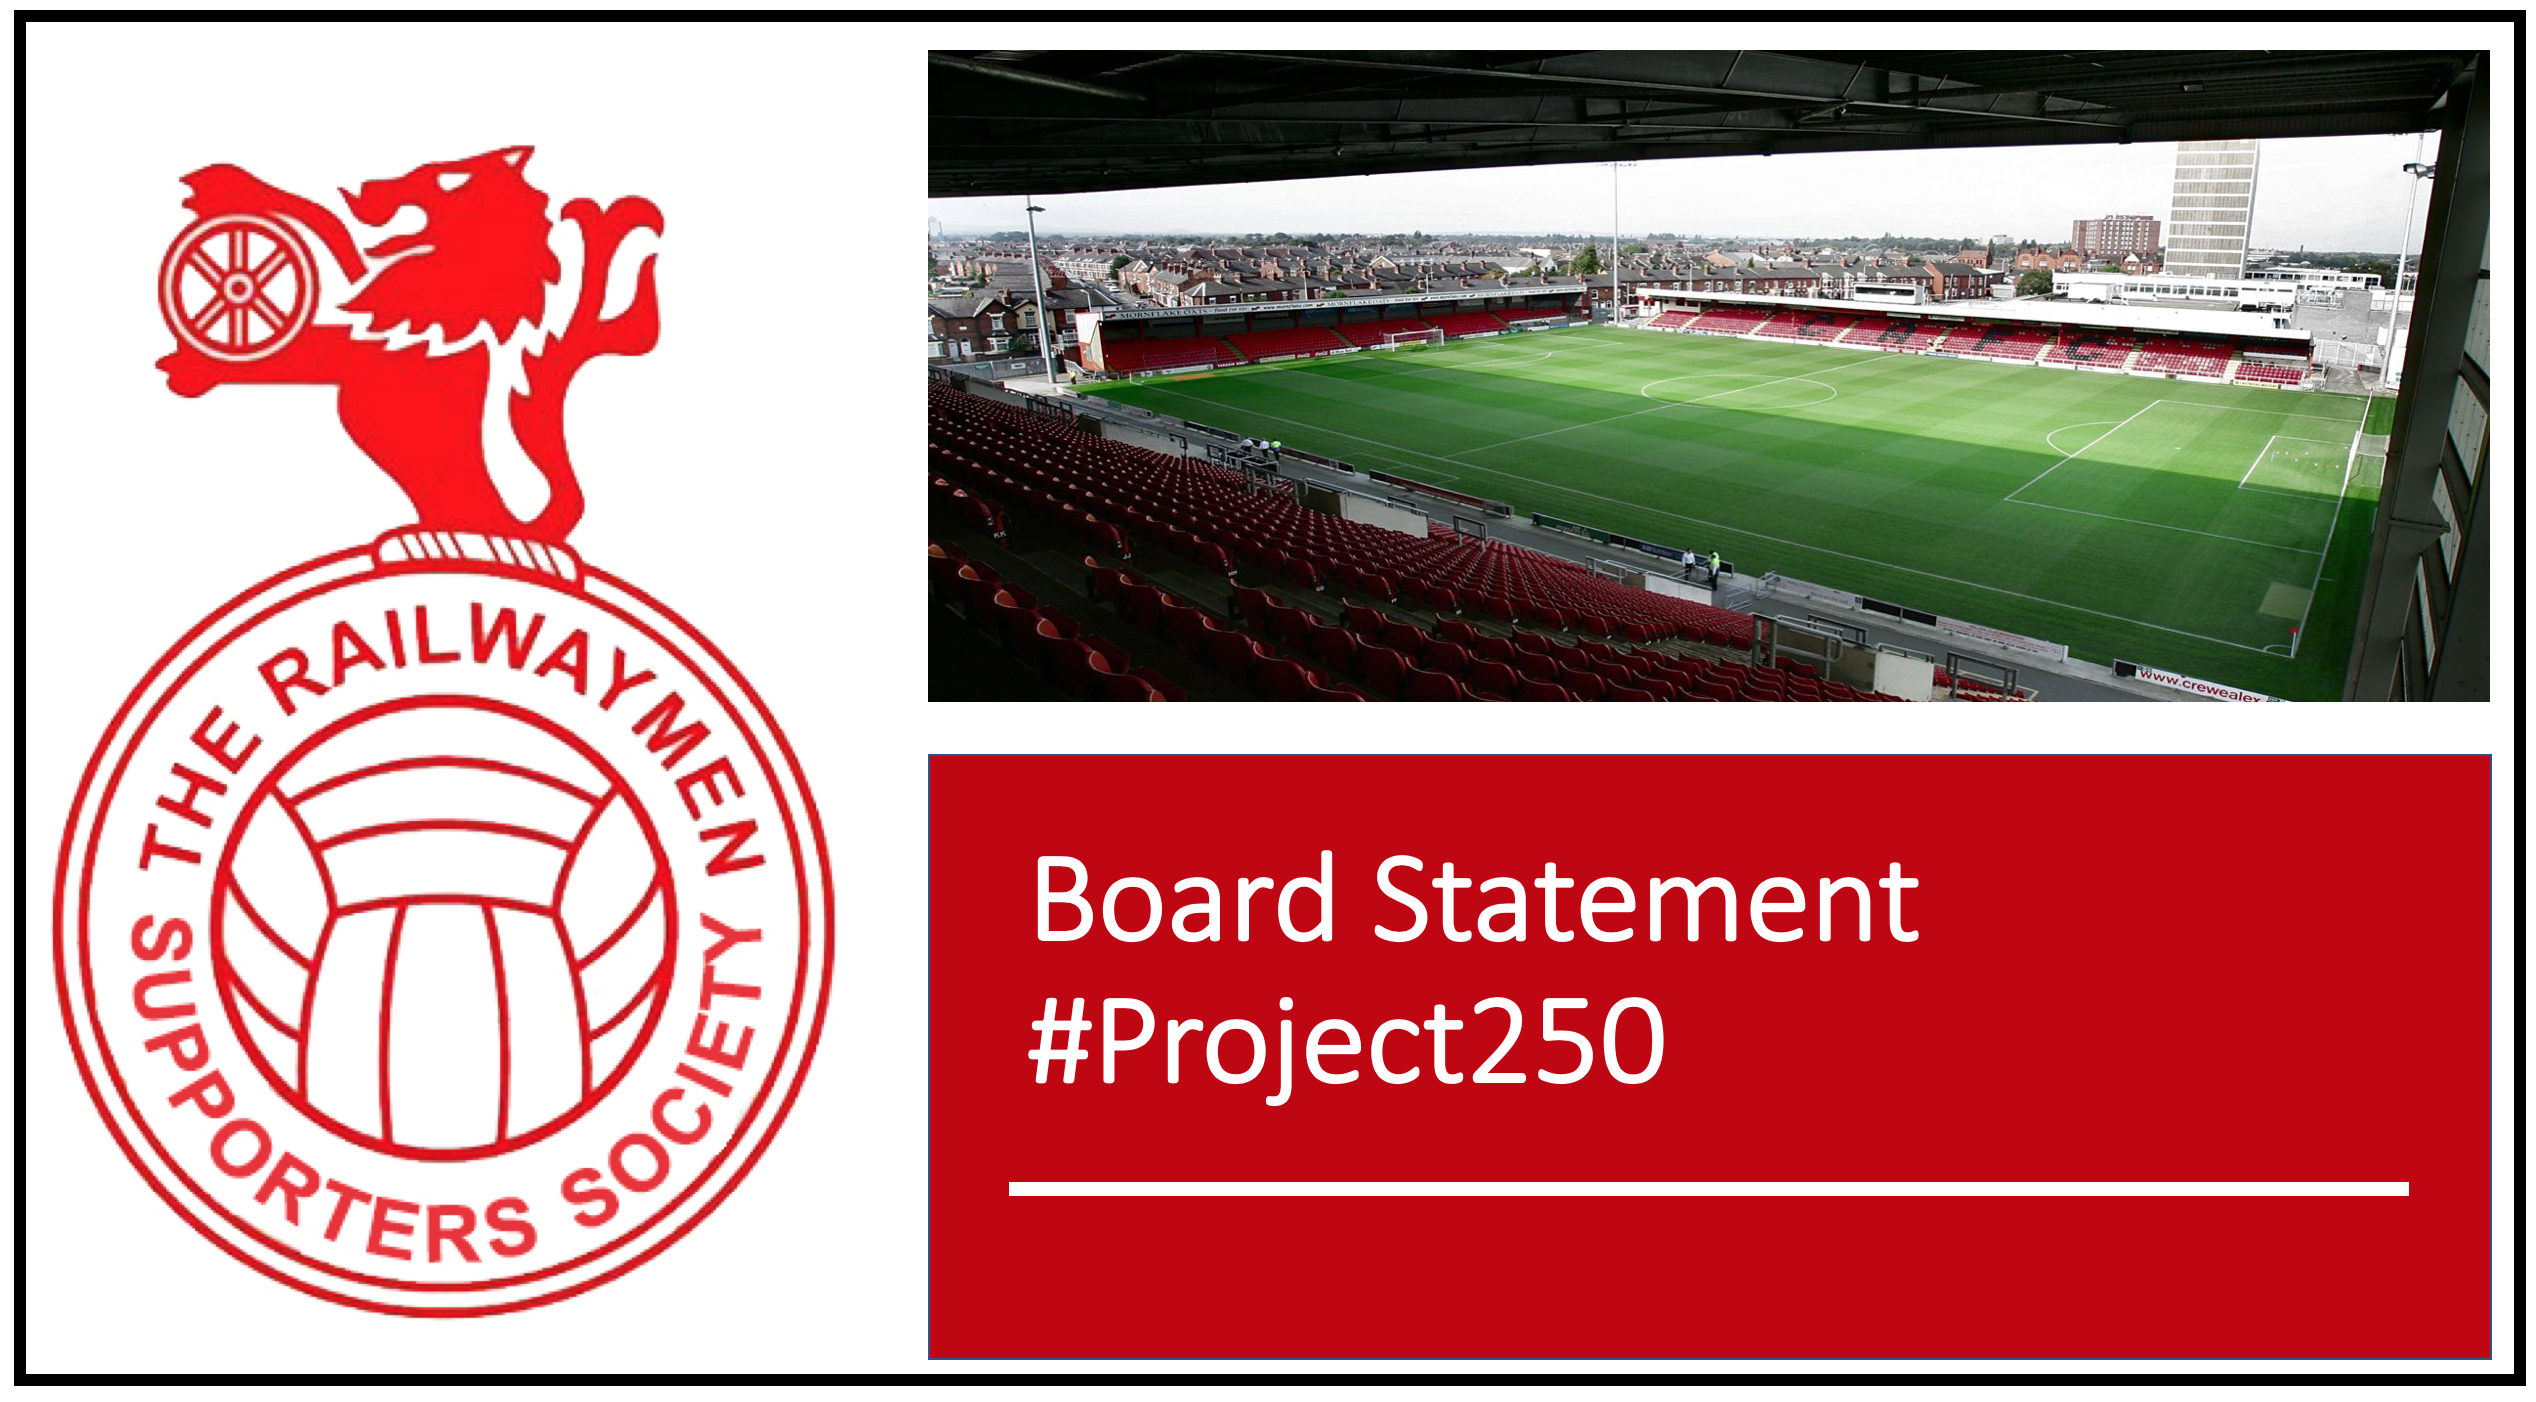 #Project250 – Board Statement